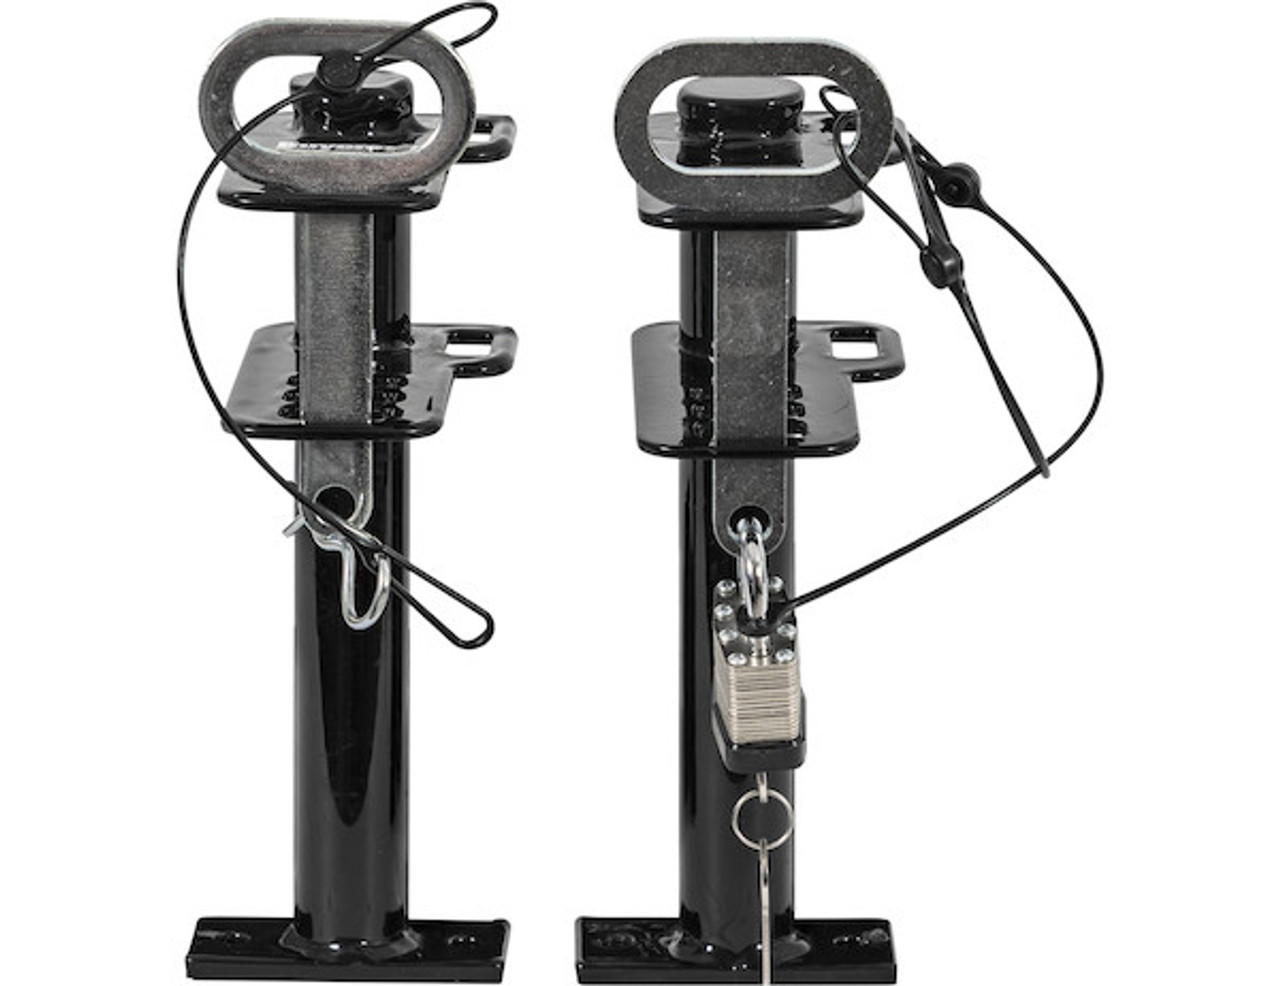 Buyers LT16 Lockable Trimmer Rack Carrier Holder for 1 Trimmer for Trailers and Trucks Picture # 8